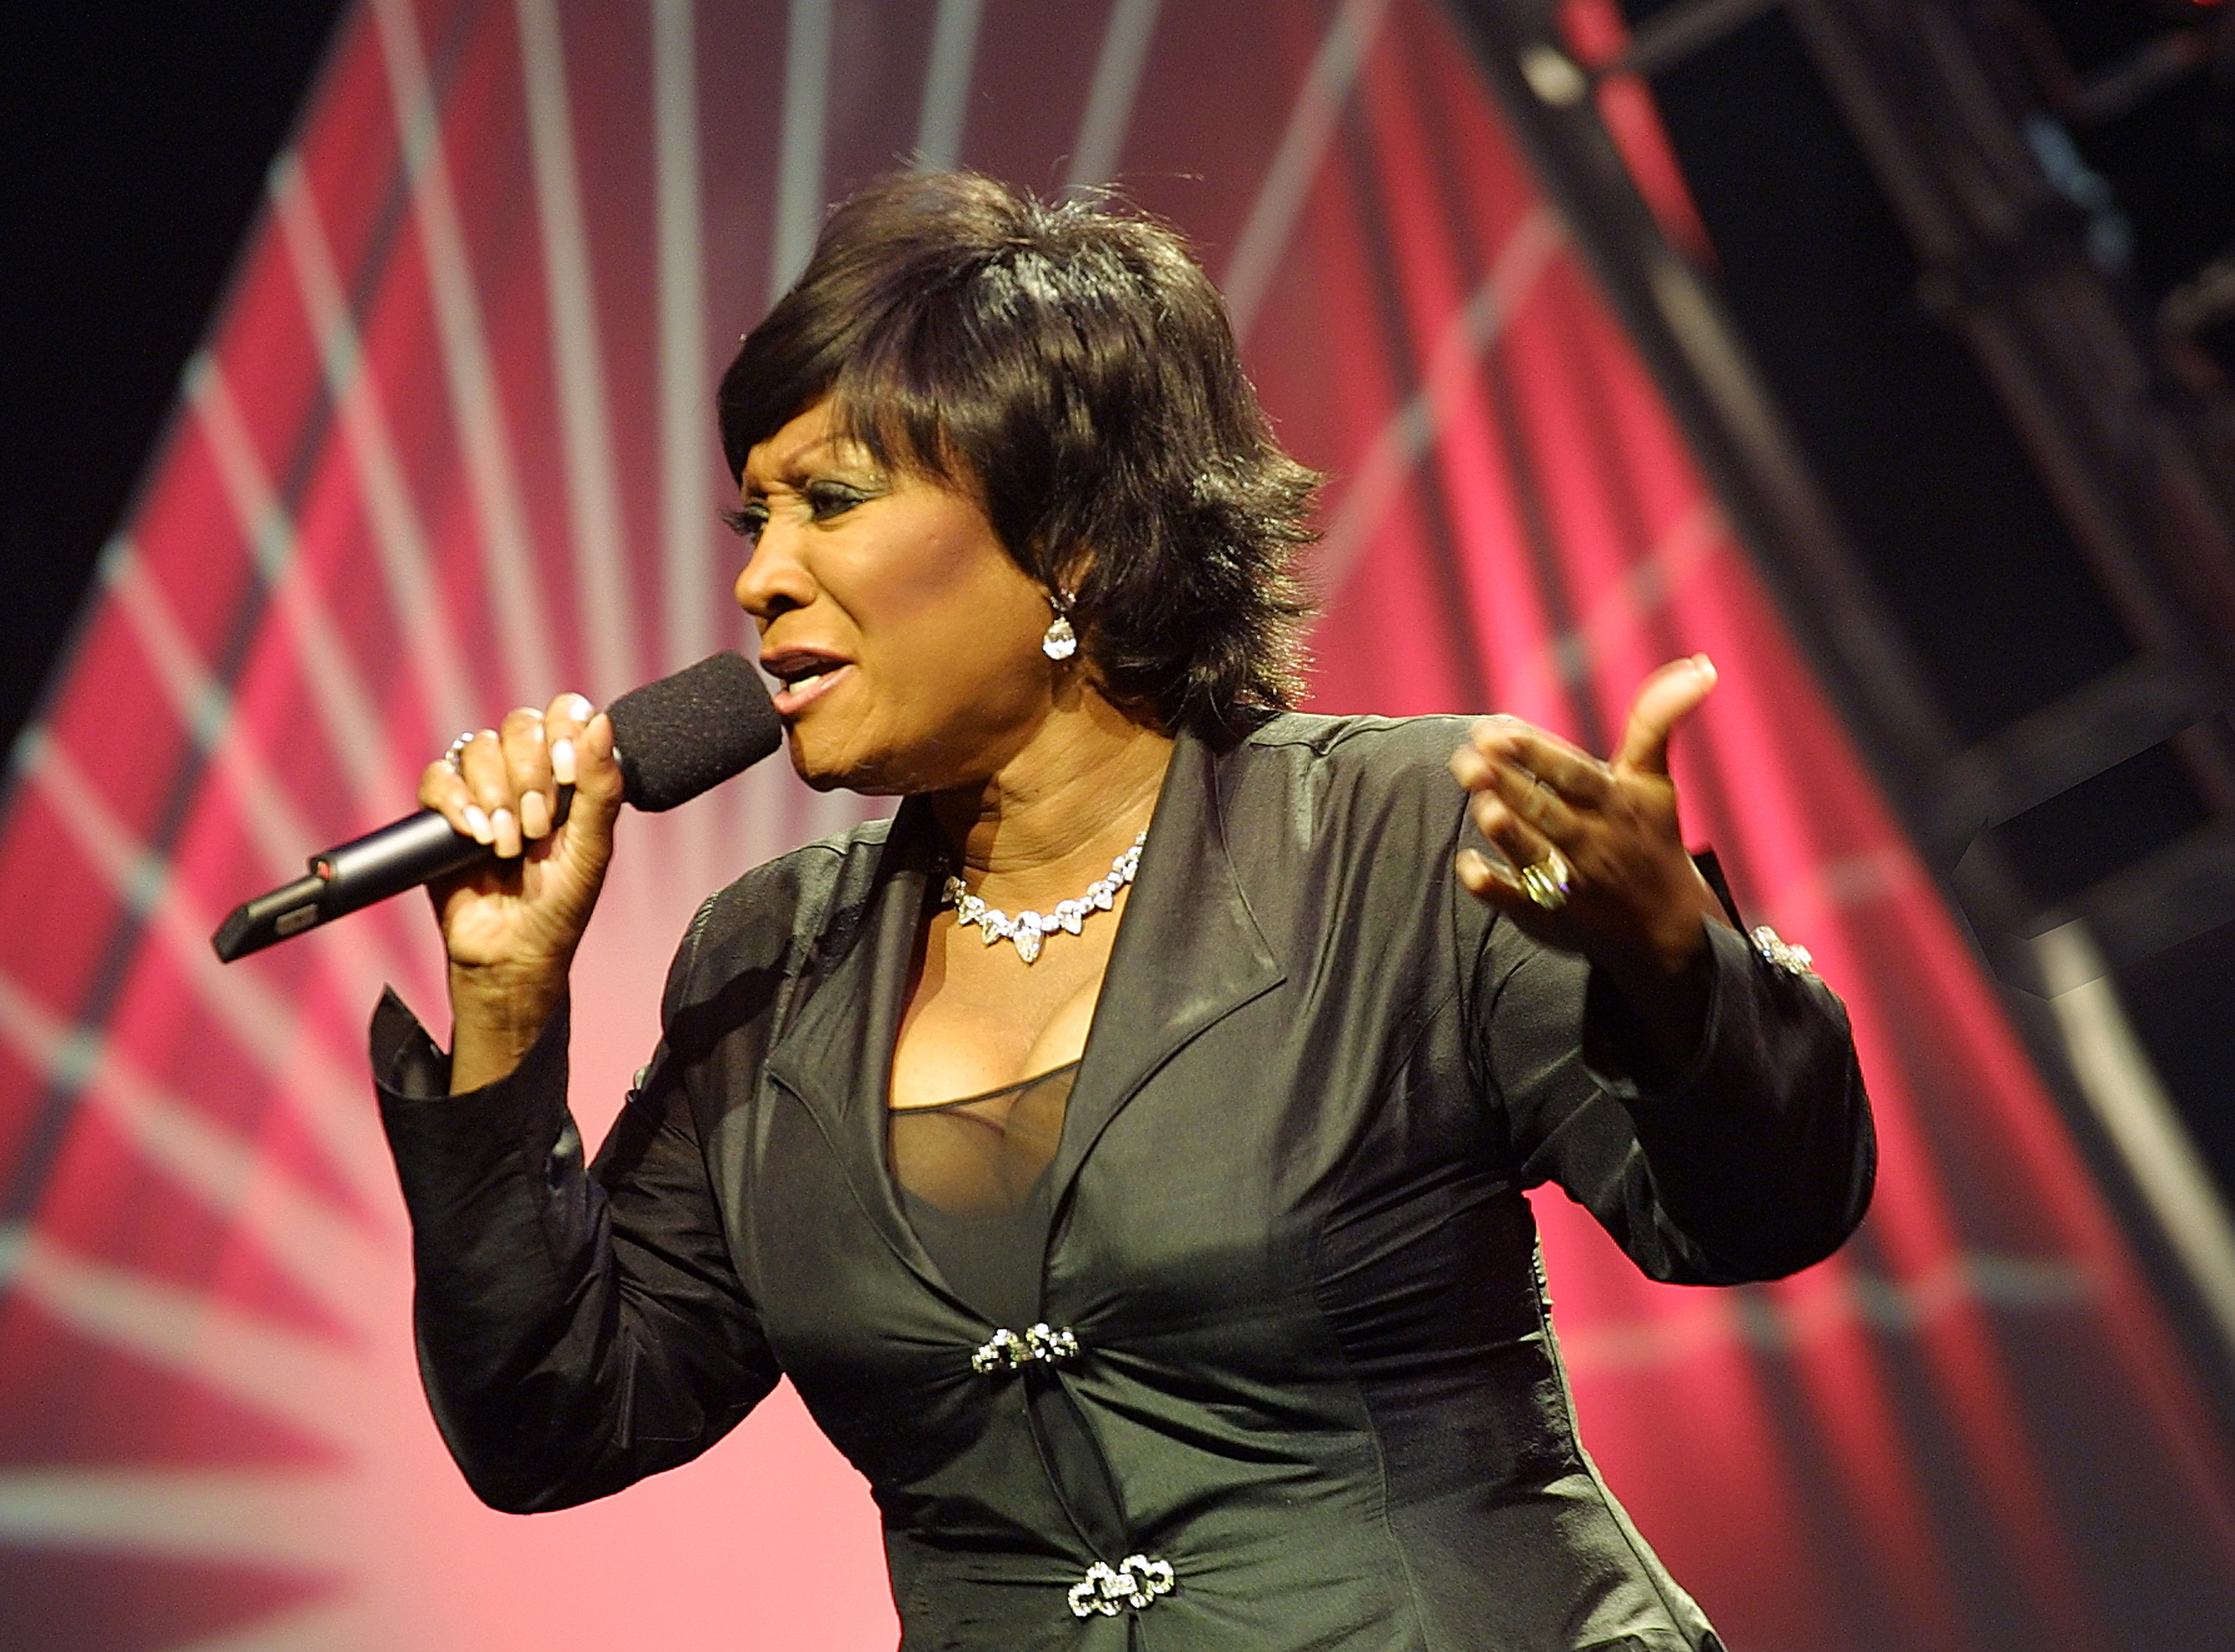 Patti LaBelle performing on-stage